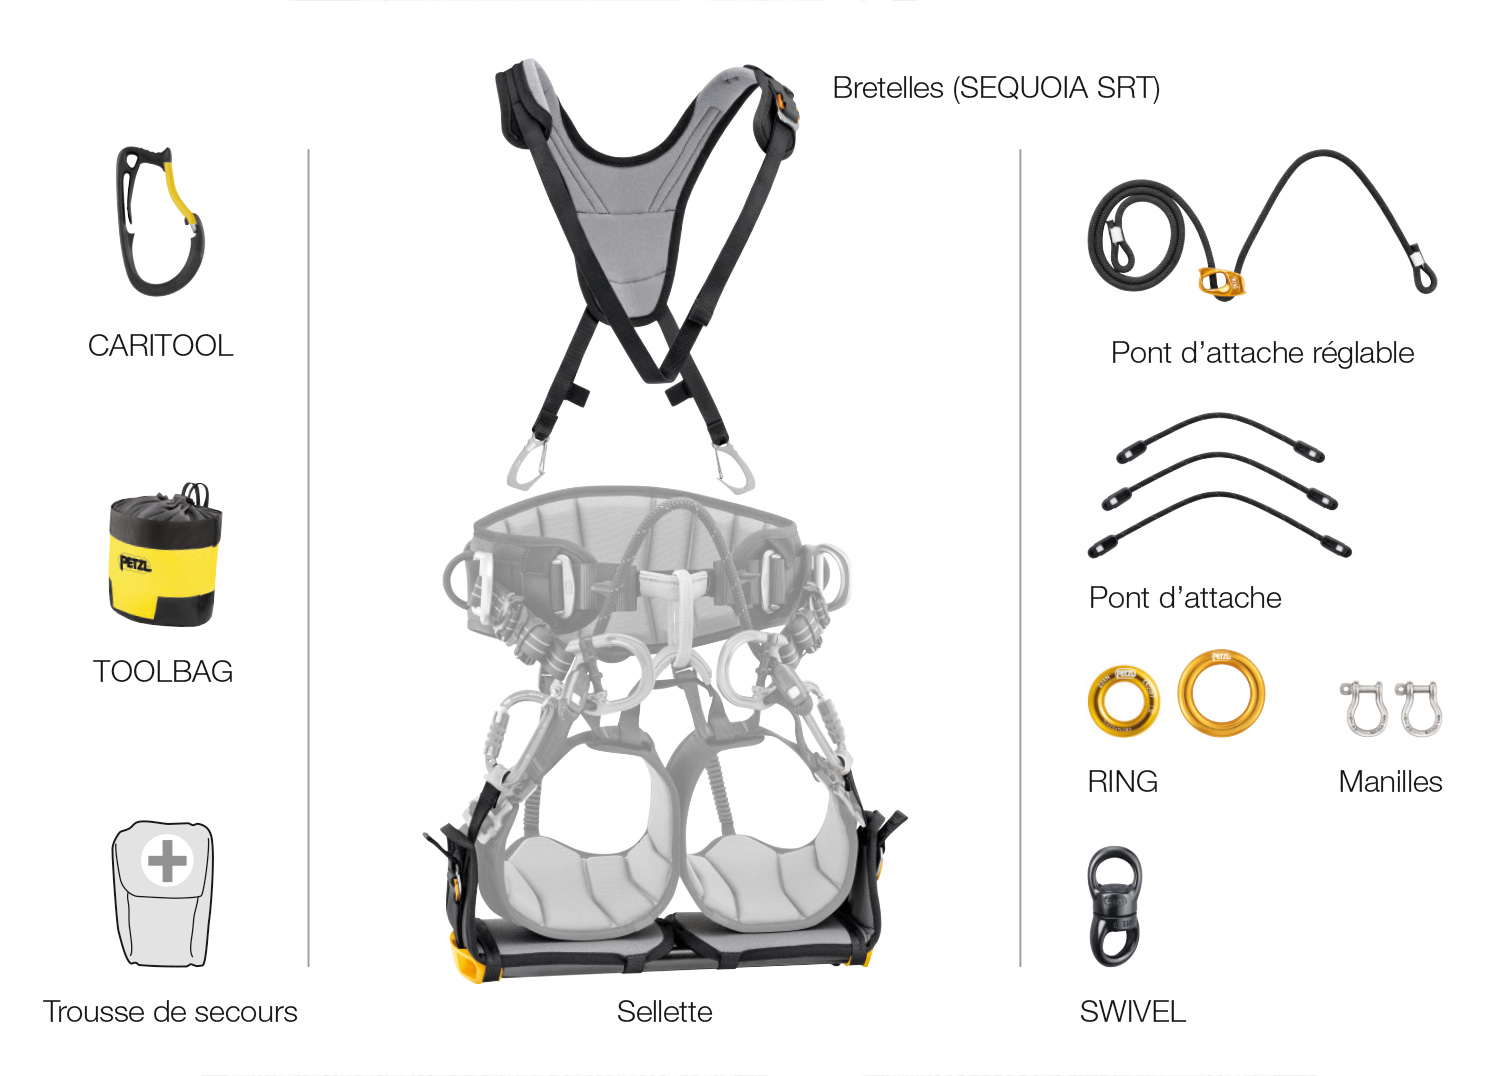 Accessories for the SEQUOIA line of harnesses.